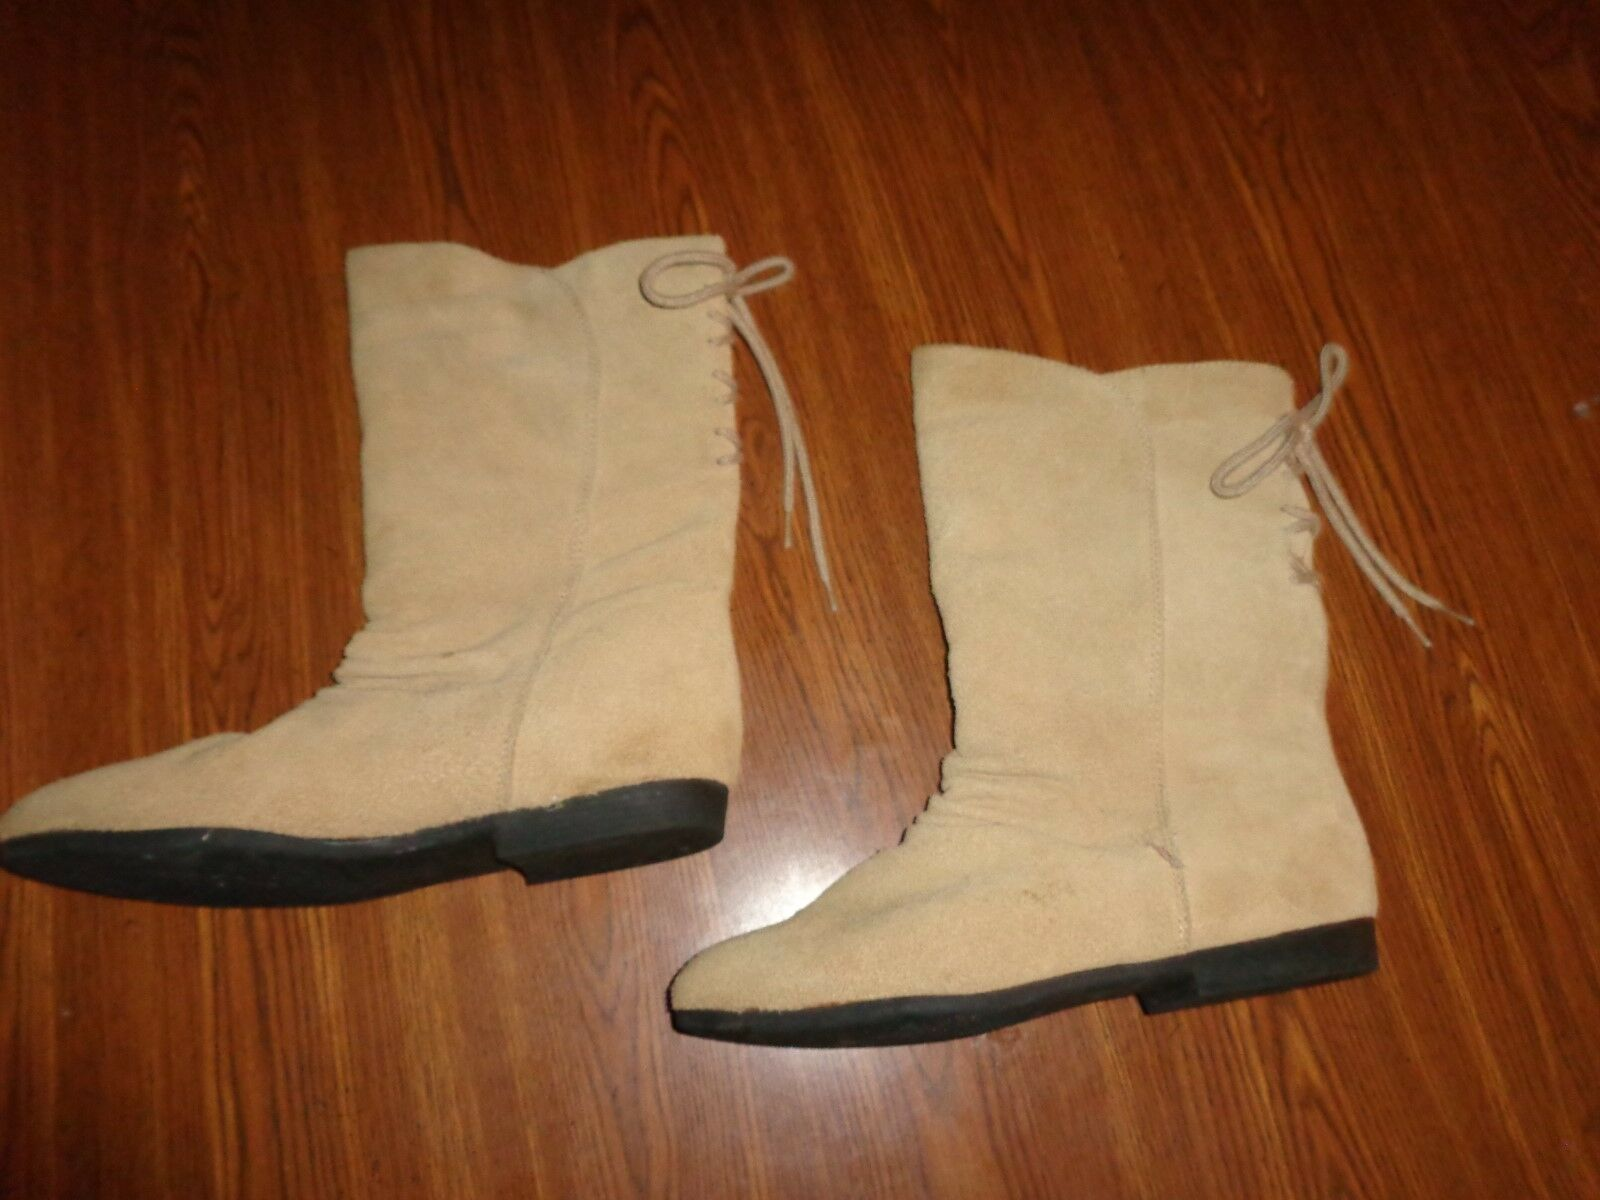 STAGLIGHT BOOTS WOMENS SIZE 7 1 2 M